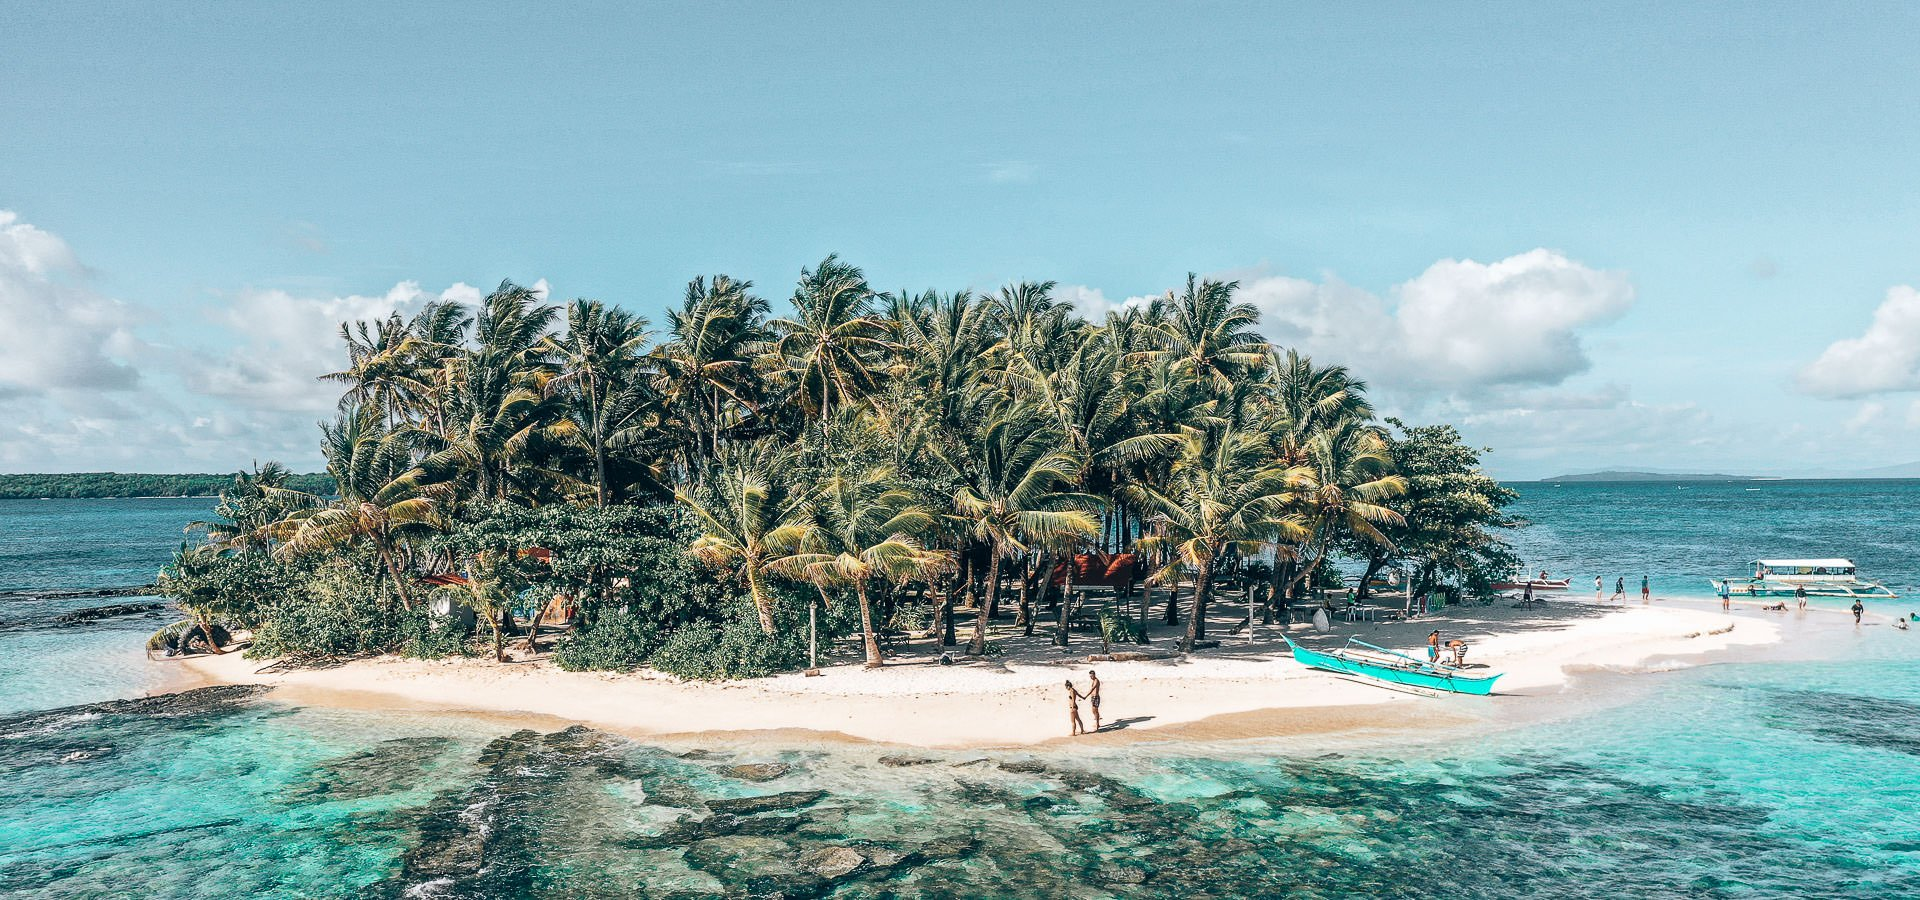 Siargao Itinerary And Expenses   siargao itinerary and expenses 6